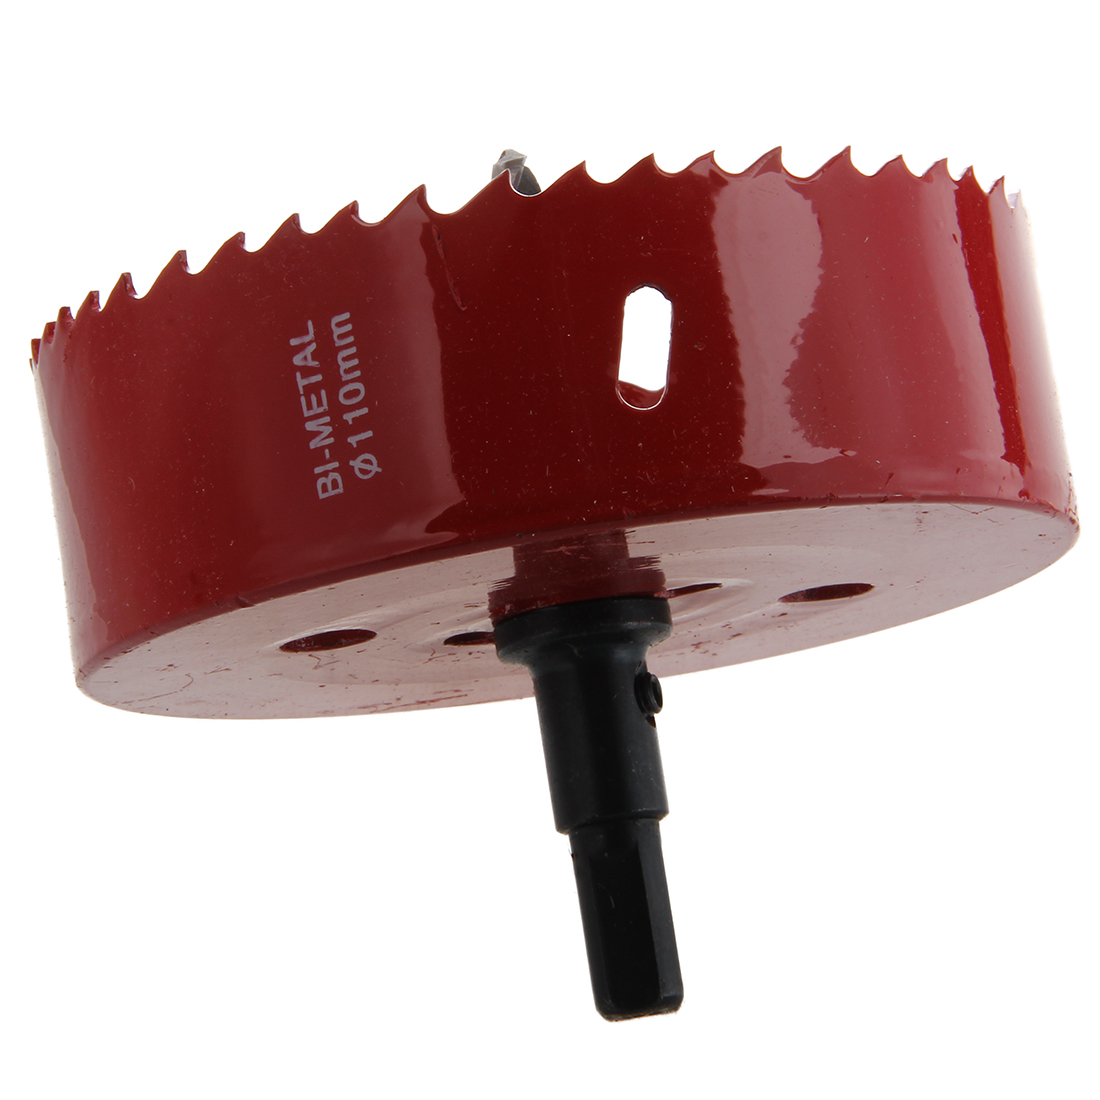 THGS Aluminum Alloy Iron Cutting 110mm Dia Bimetal Hole Saw best selling aluminum alloy wood cutting 60mm diameter hole saw tool